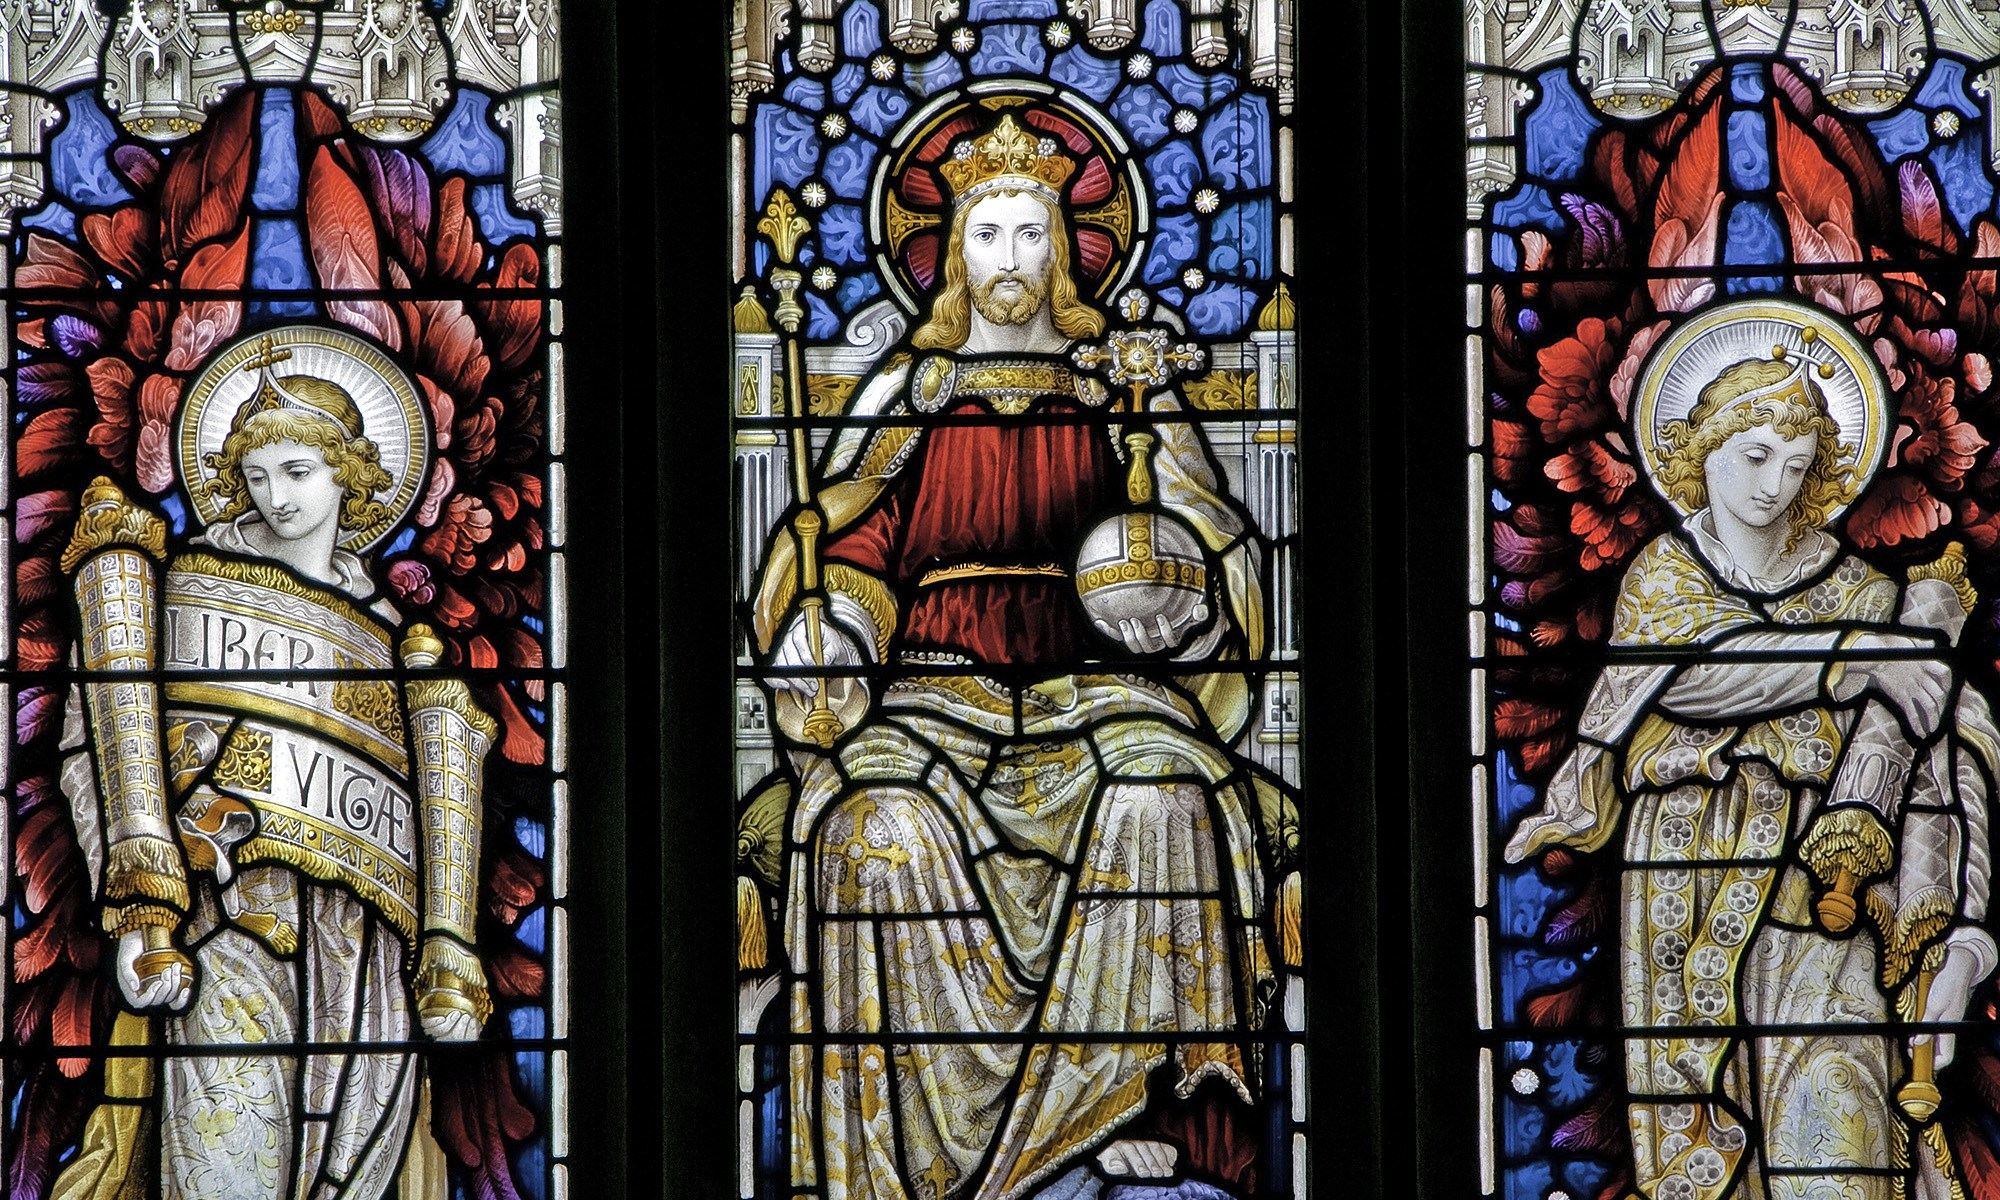 The King of Stained Glass at All Saints in Orton